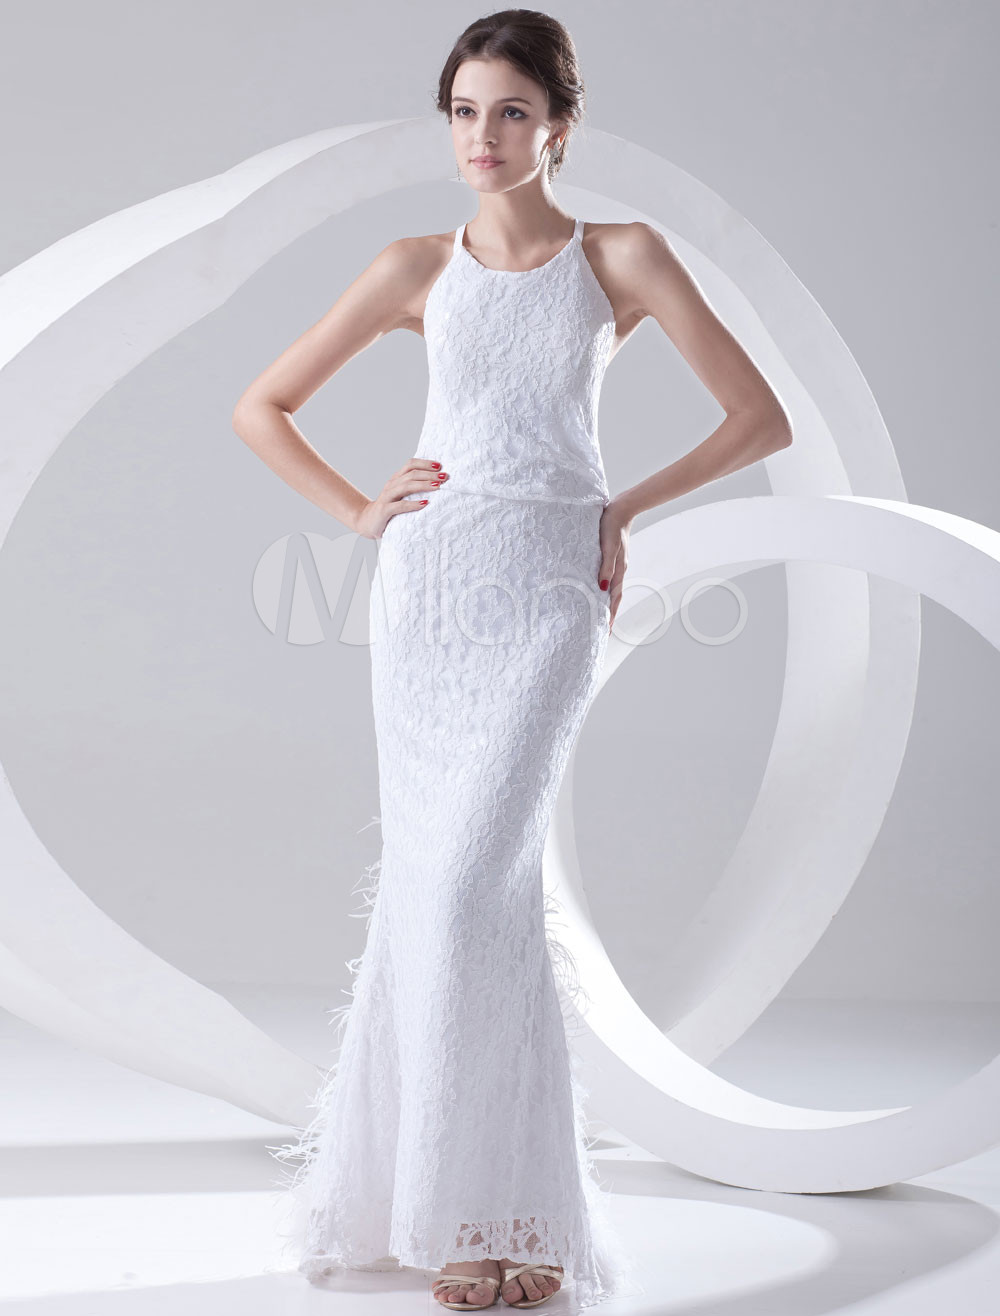 Elegant White Lace Feather Jewel Neck Women\'s Evening Dress ...